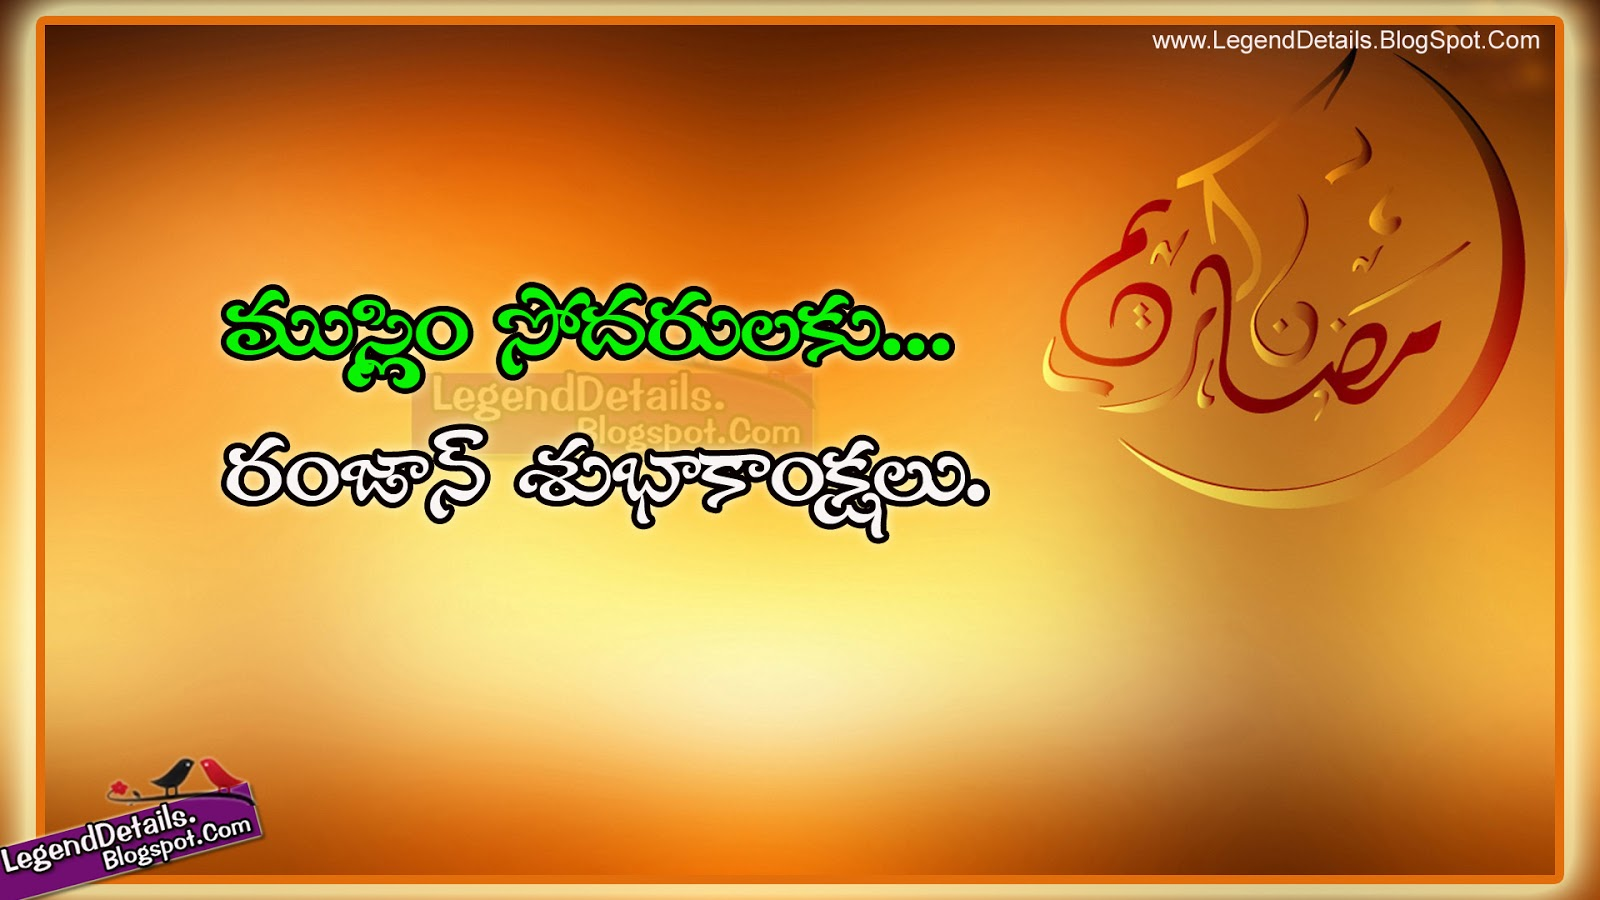 Ramzan Ramadan Telugu Wishes Quotes And Greetings Legendary Quotes